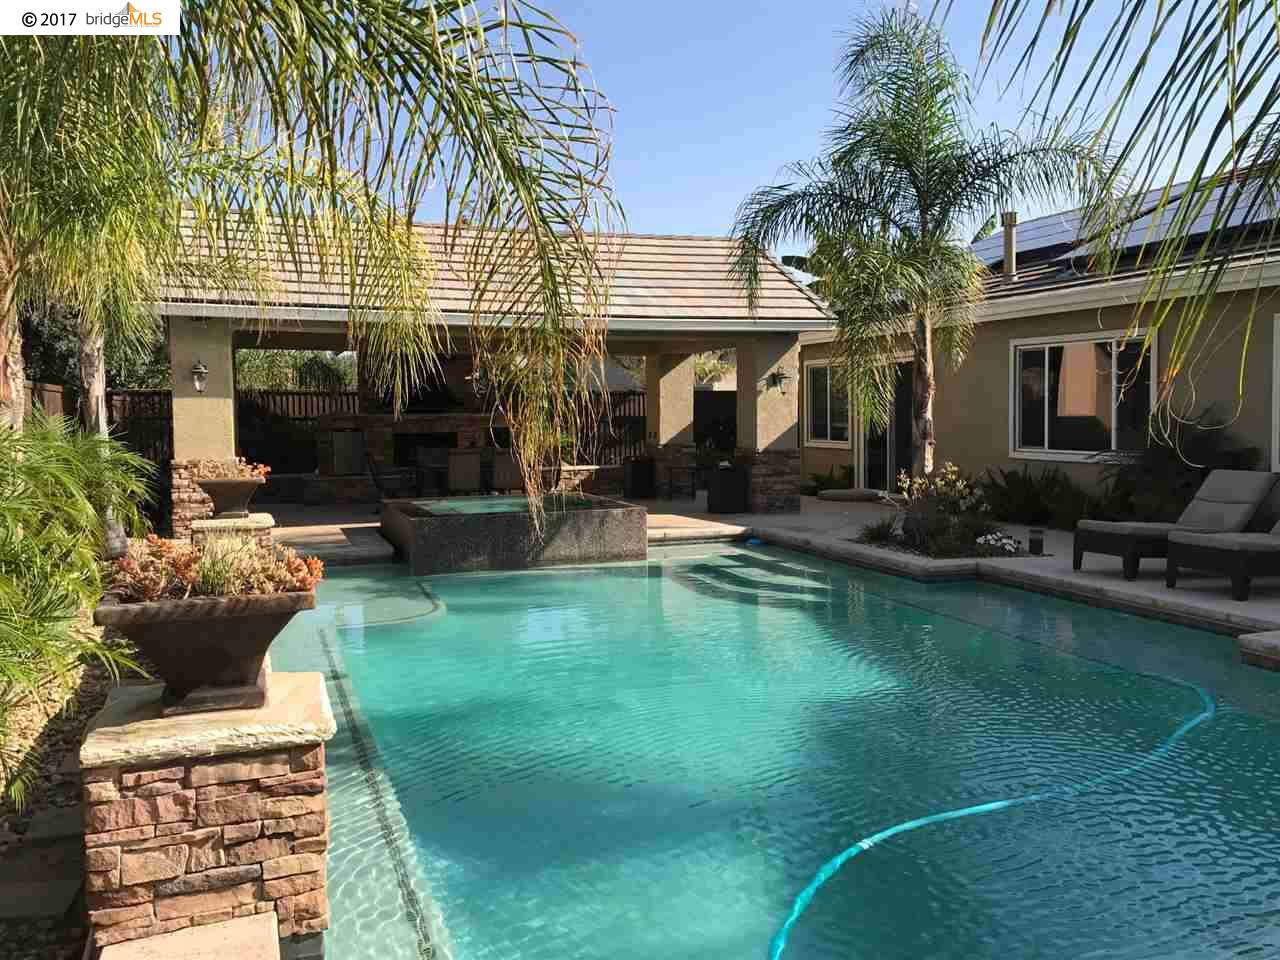 Casa Unifamiliar por un Venta en 10 Gold Run Court Oakley, California 94561 Estados Unidos